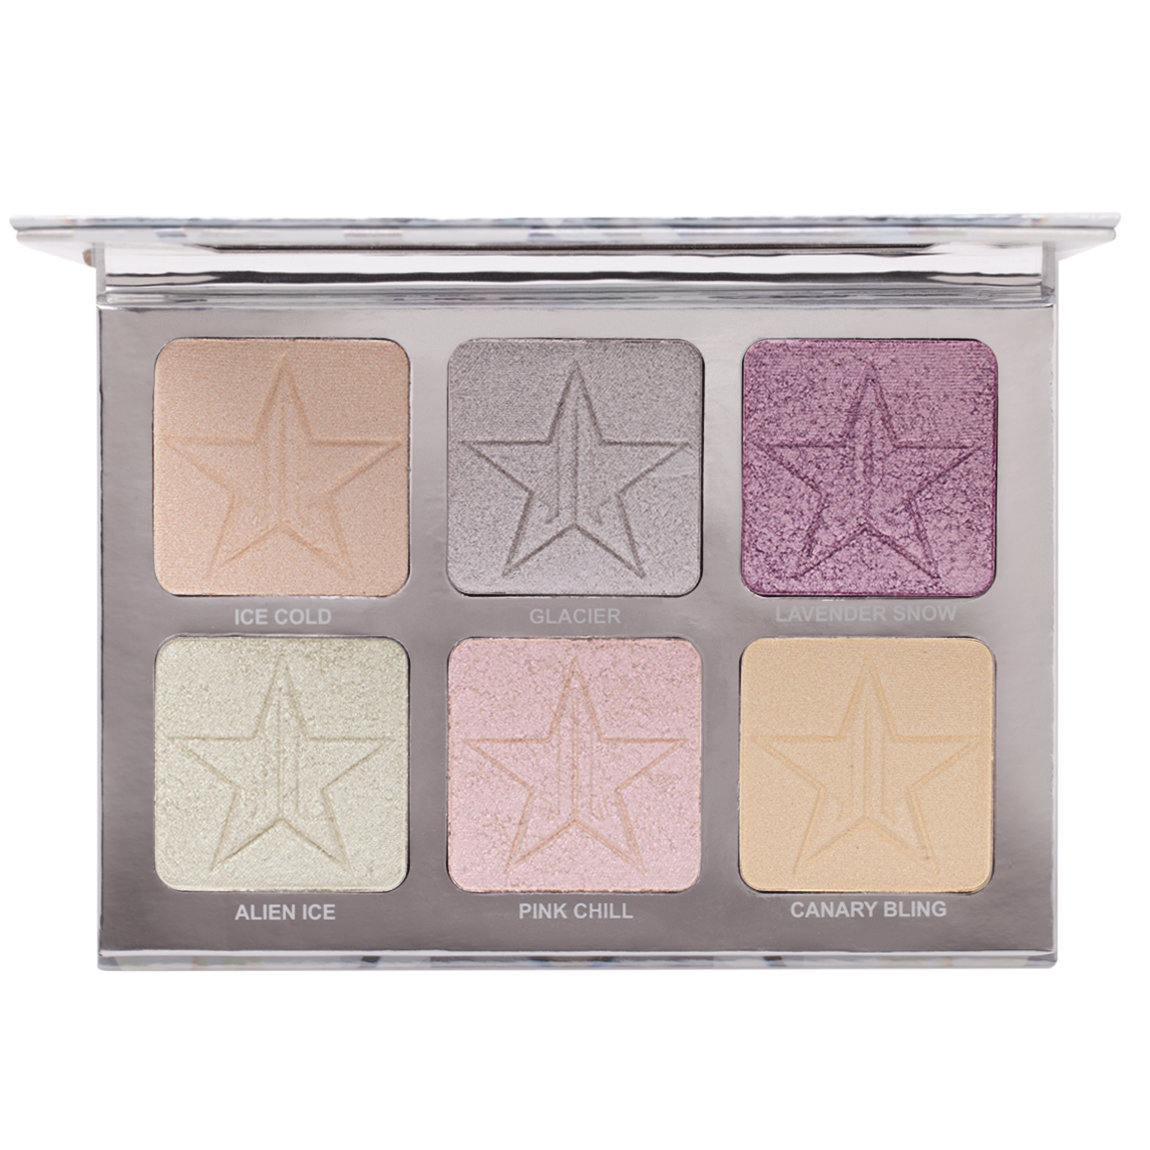 Jeffree Star Cosmetics Skin Frost Pro Palette Platinum Ice product smear.